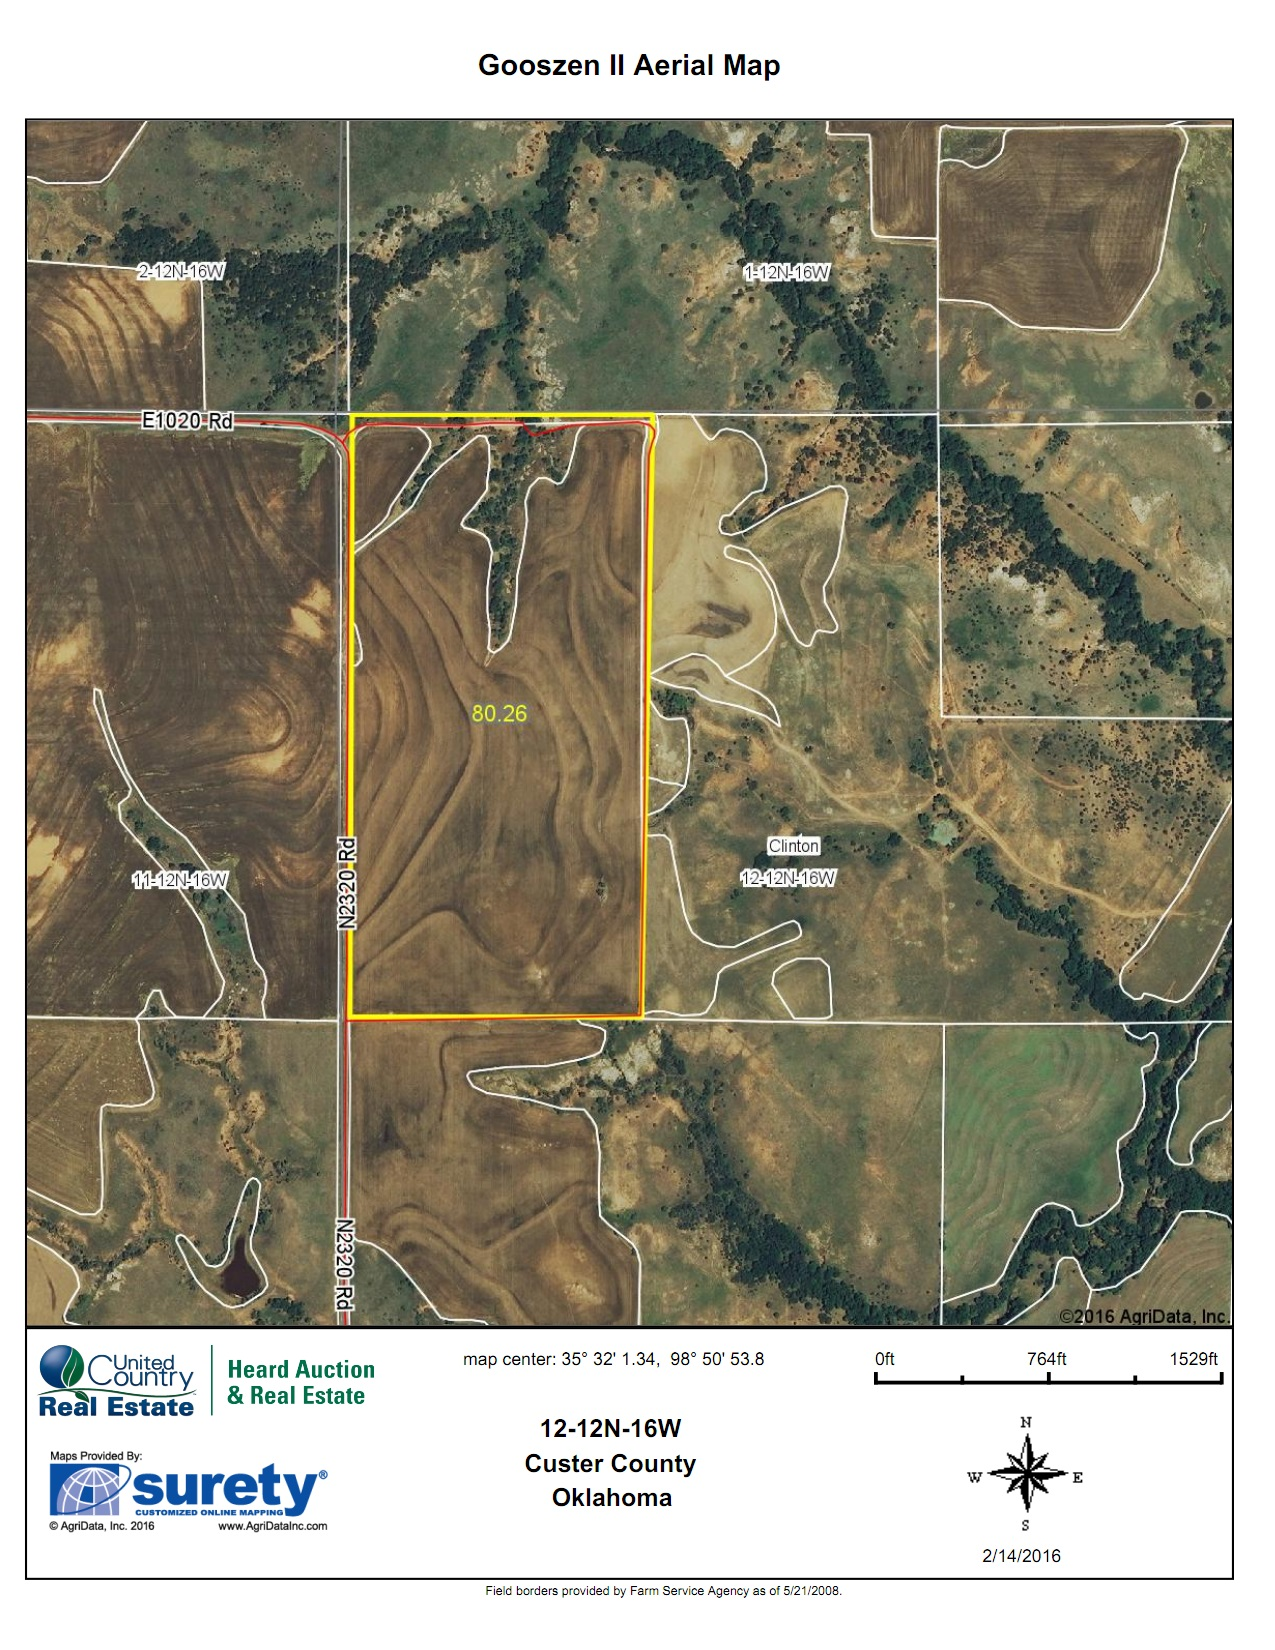 Oklahoma Farm for Sale, Custer County, Tract 1